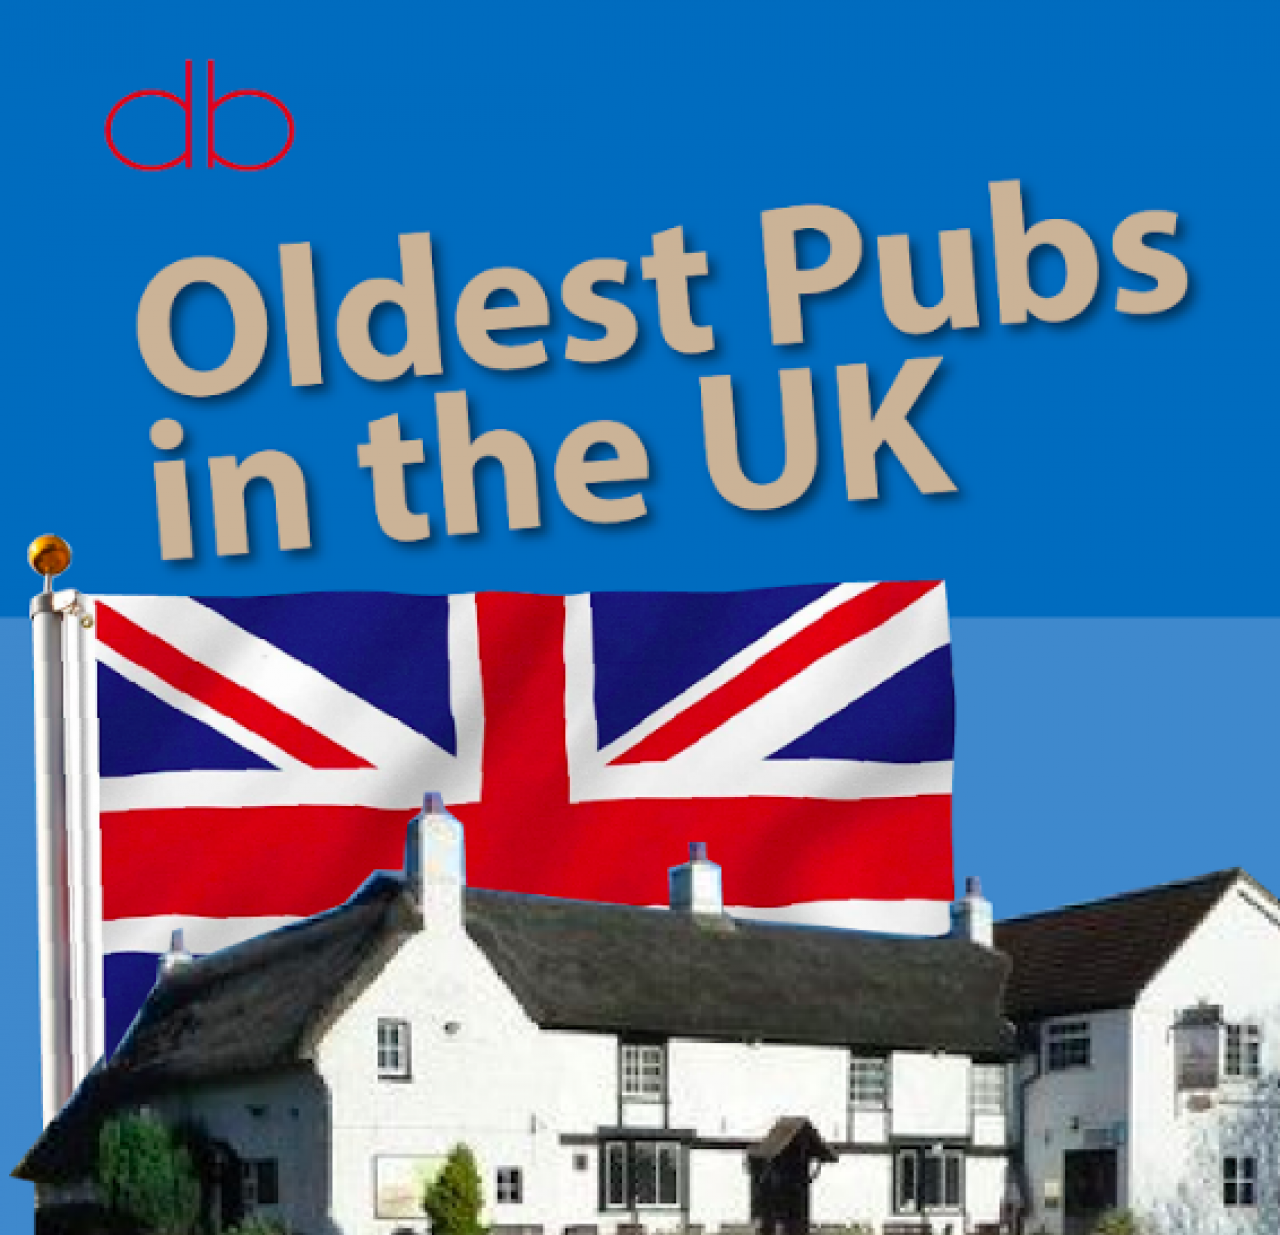 Five of the oldest pubs in the world